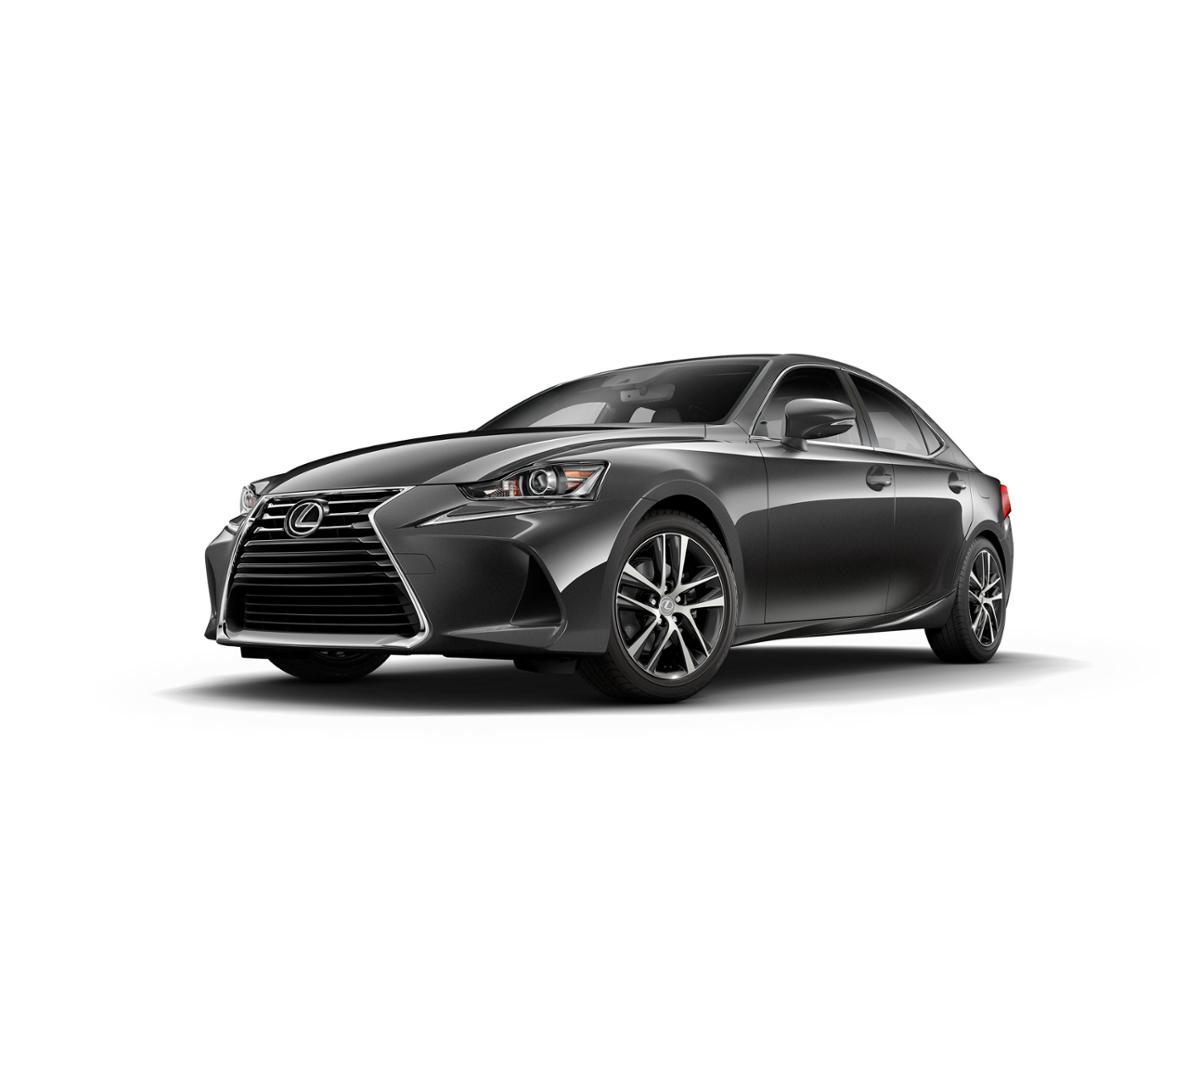 2019 Lexus IS 300 Vehicle Photo in Bedford, NH 03110